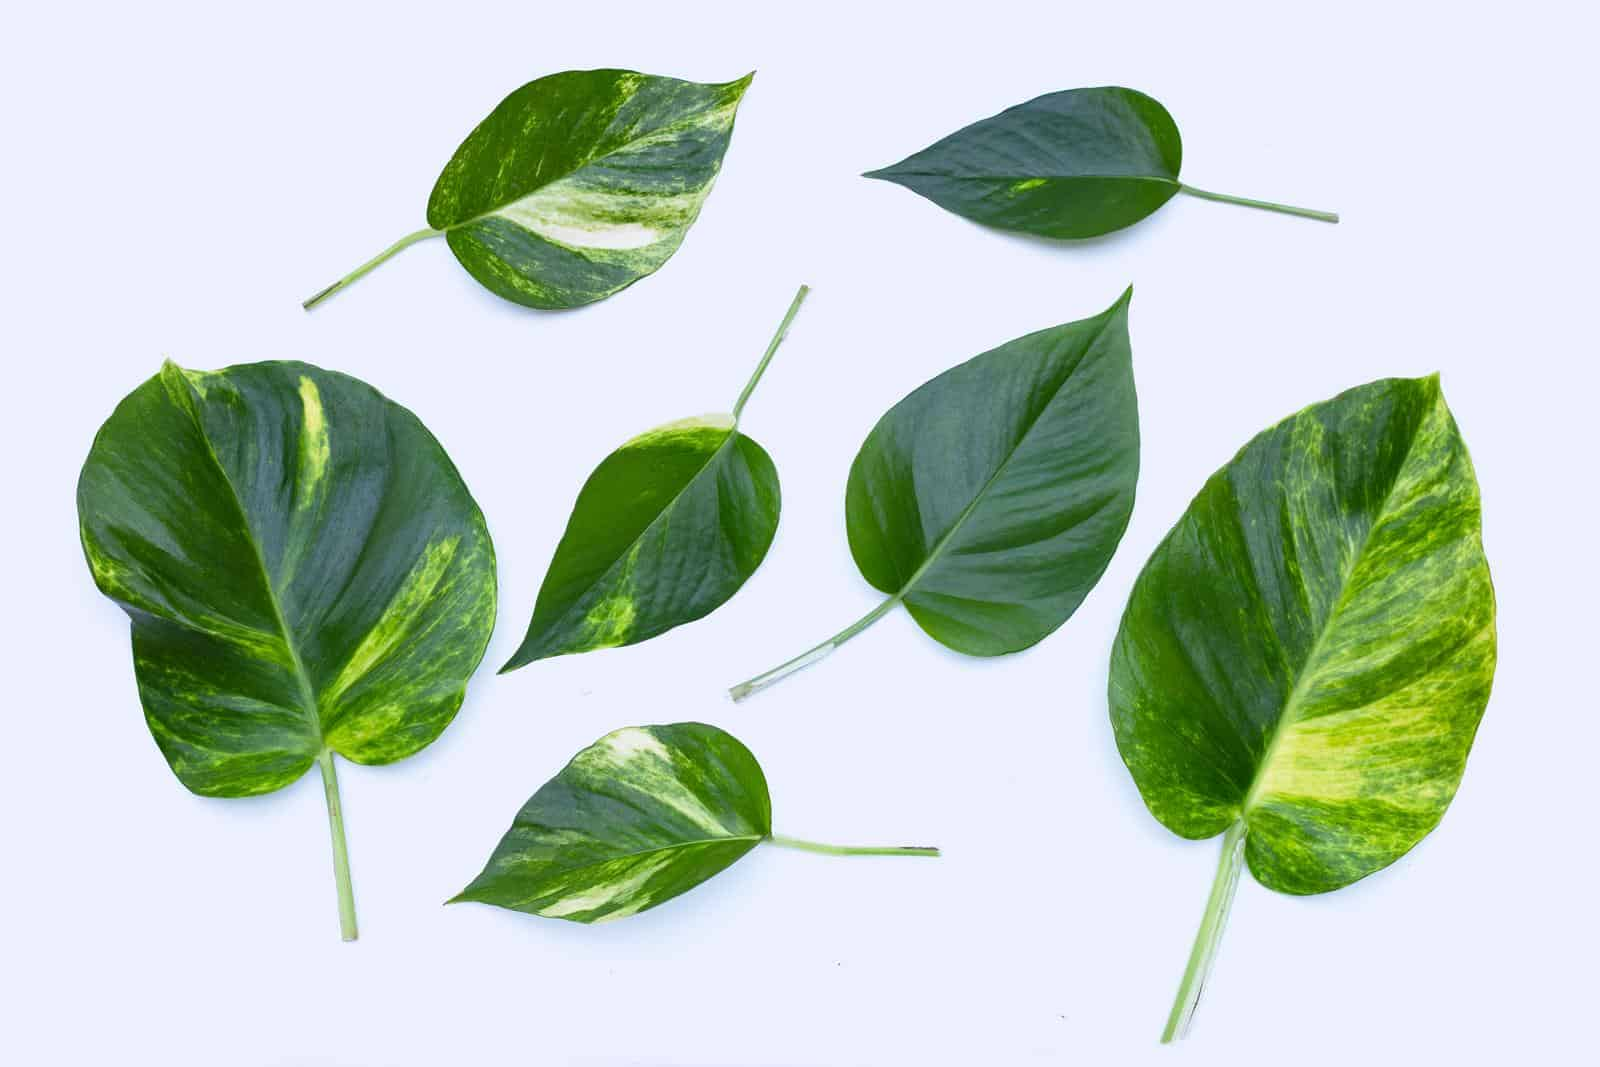 Why is Golden pothos called Devils Ivy